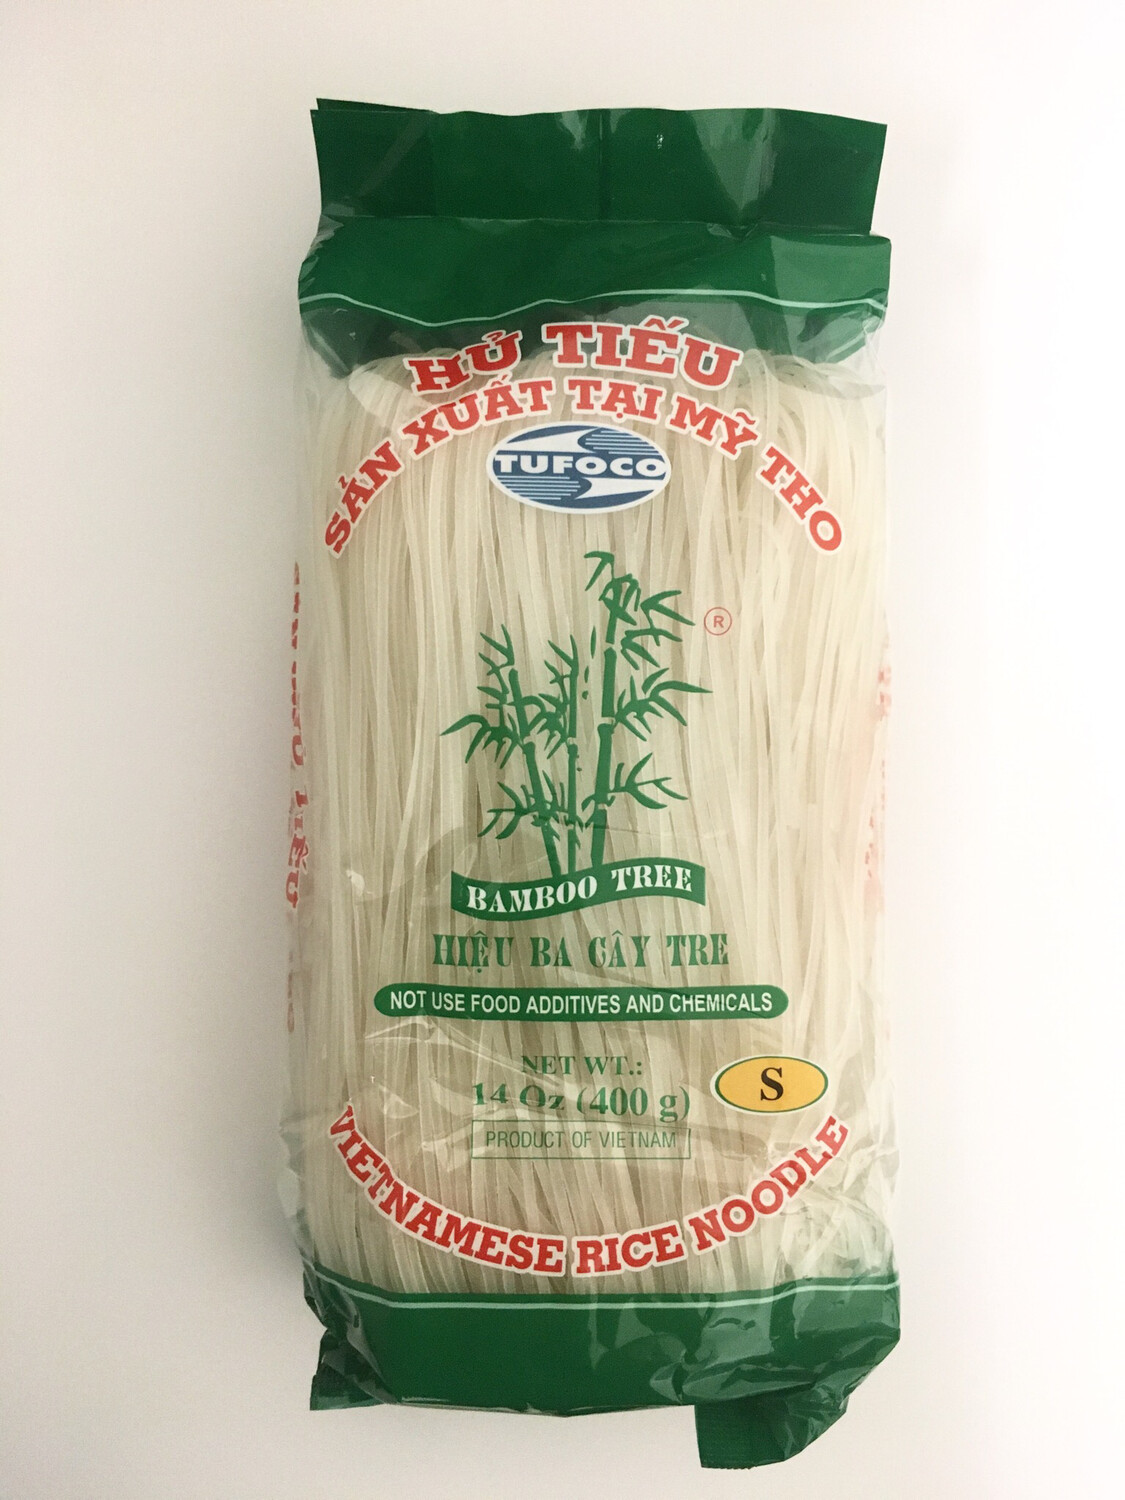 3 CAYTRE 1MM RICE STICK (BANH PHO) 30X400G